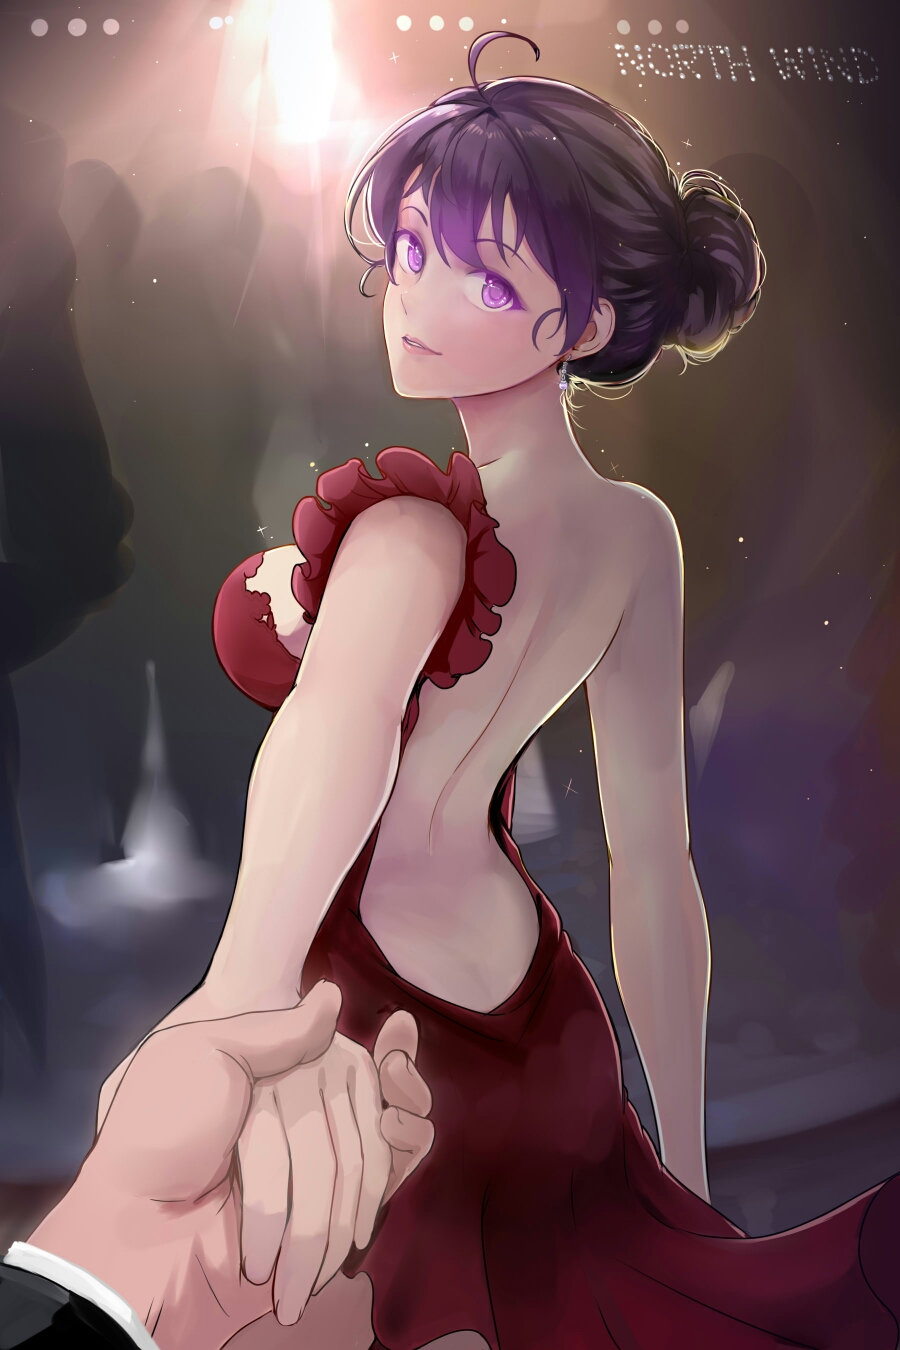 1boy 1girl ahoge arched_back arm_at_side asymmetrical_clothes back backless_outfit backlighting bare_back bare_shoulders beifeng_han blush breasts crowd dress earrings evening_gown foreshortening glowing glowing_eyes hair_bun hand_holding highres jewelry lips long_sleeves looking_at_viewer medium_breasts miyaura_sanshio open-back_dress original parted_lips pov purple_hair red_dress short_hair sideboob single_strap solo_focus standing violet_eyes